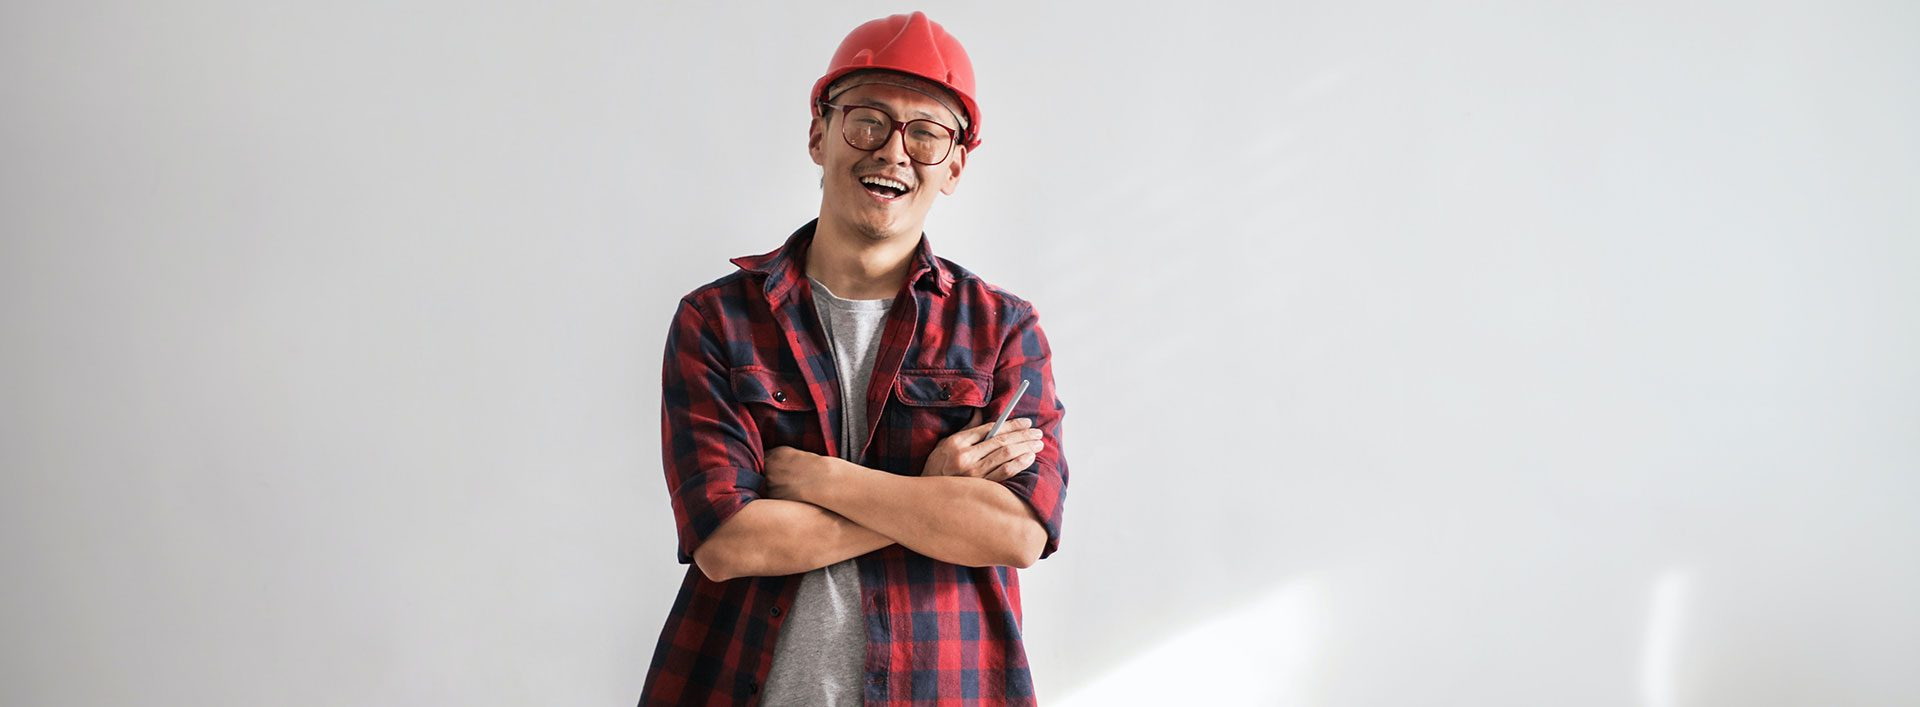 Photo of young man in hard hat with arms crossed and smiling